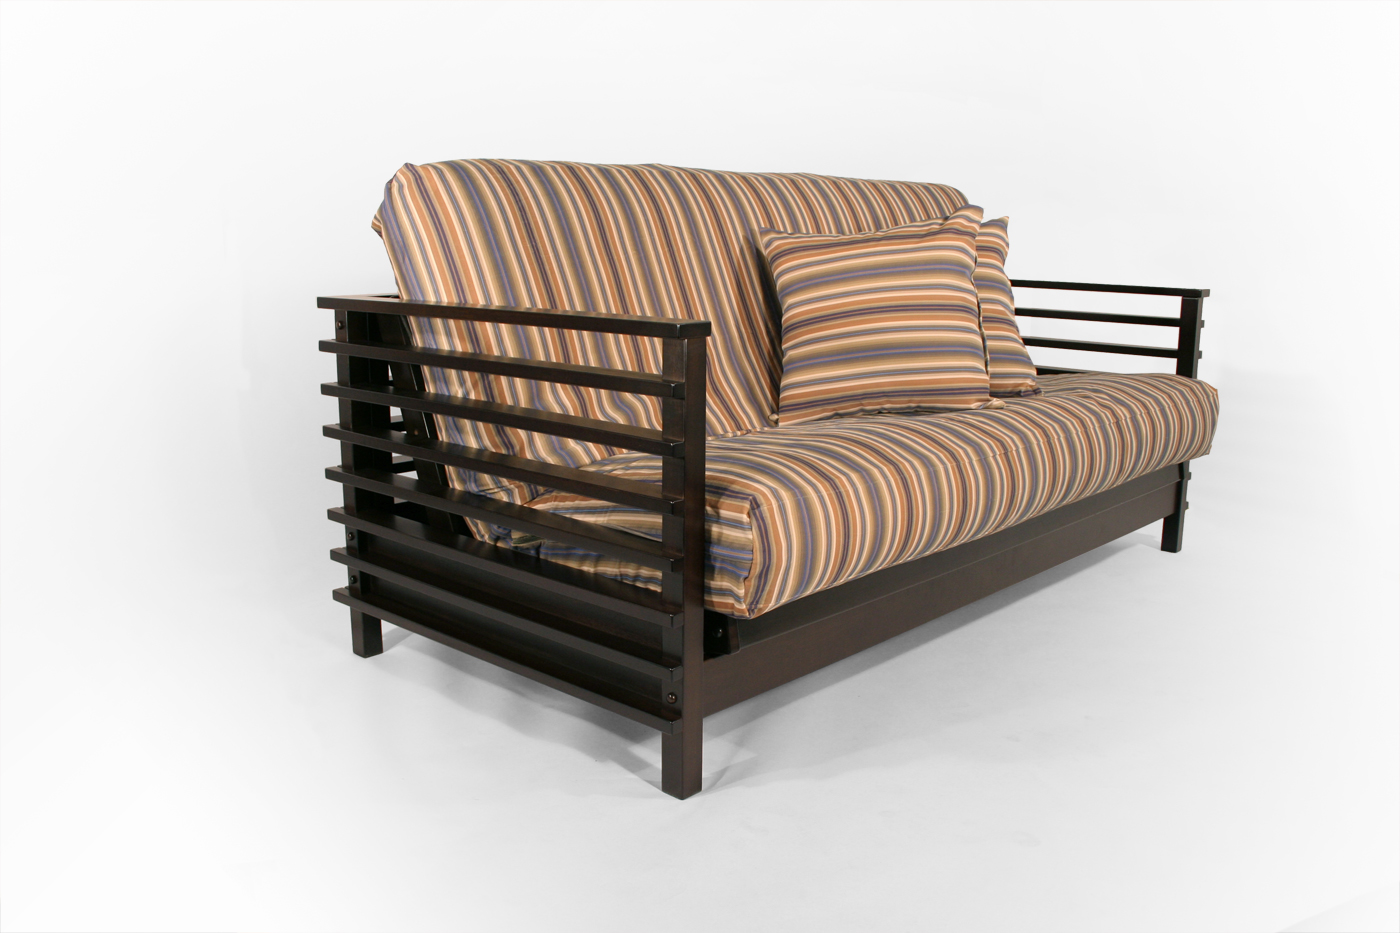 Top 3 Strata Wall Hugger Futons For Your Home